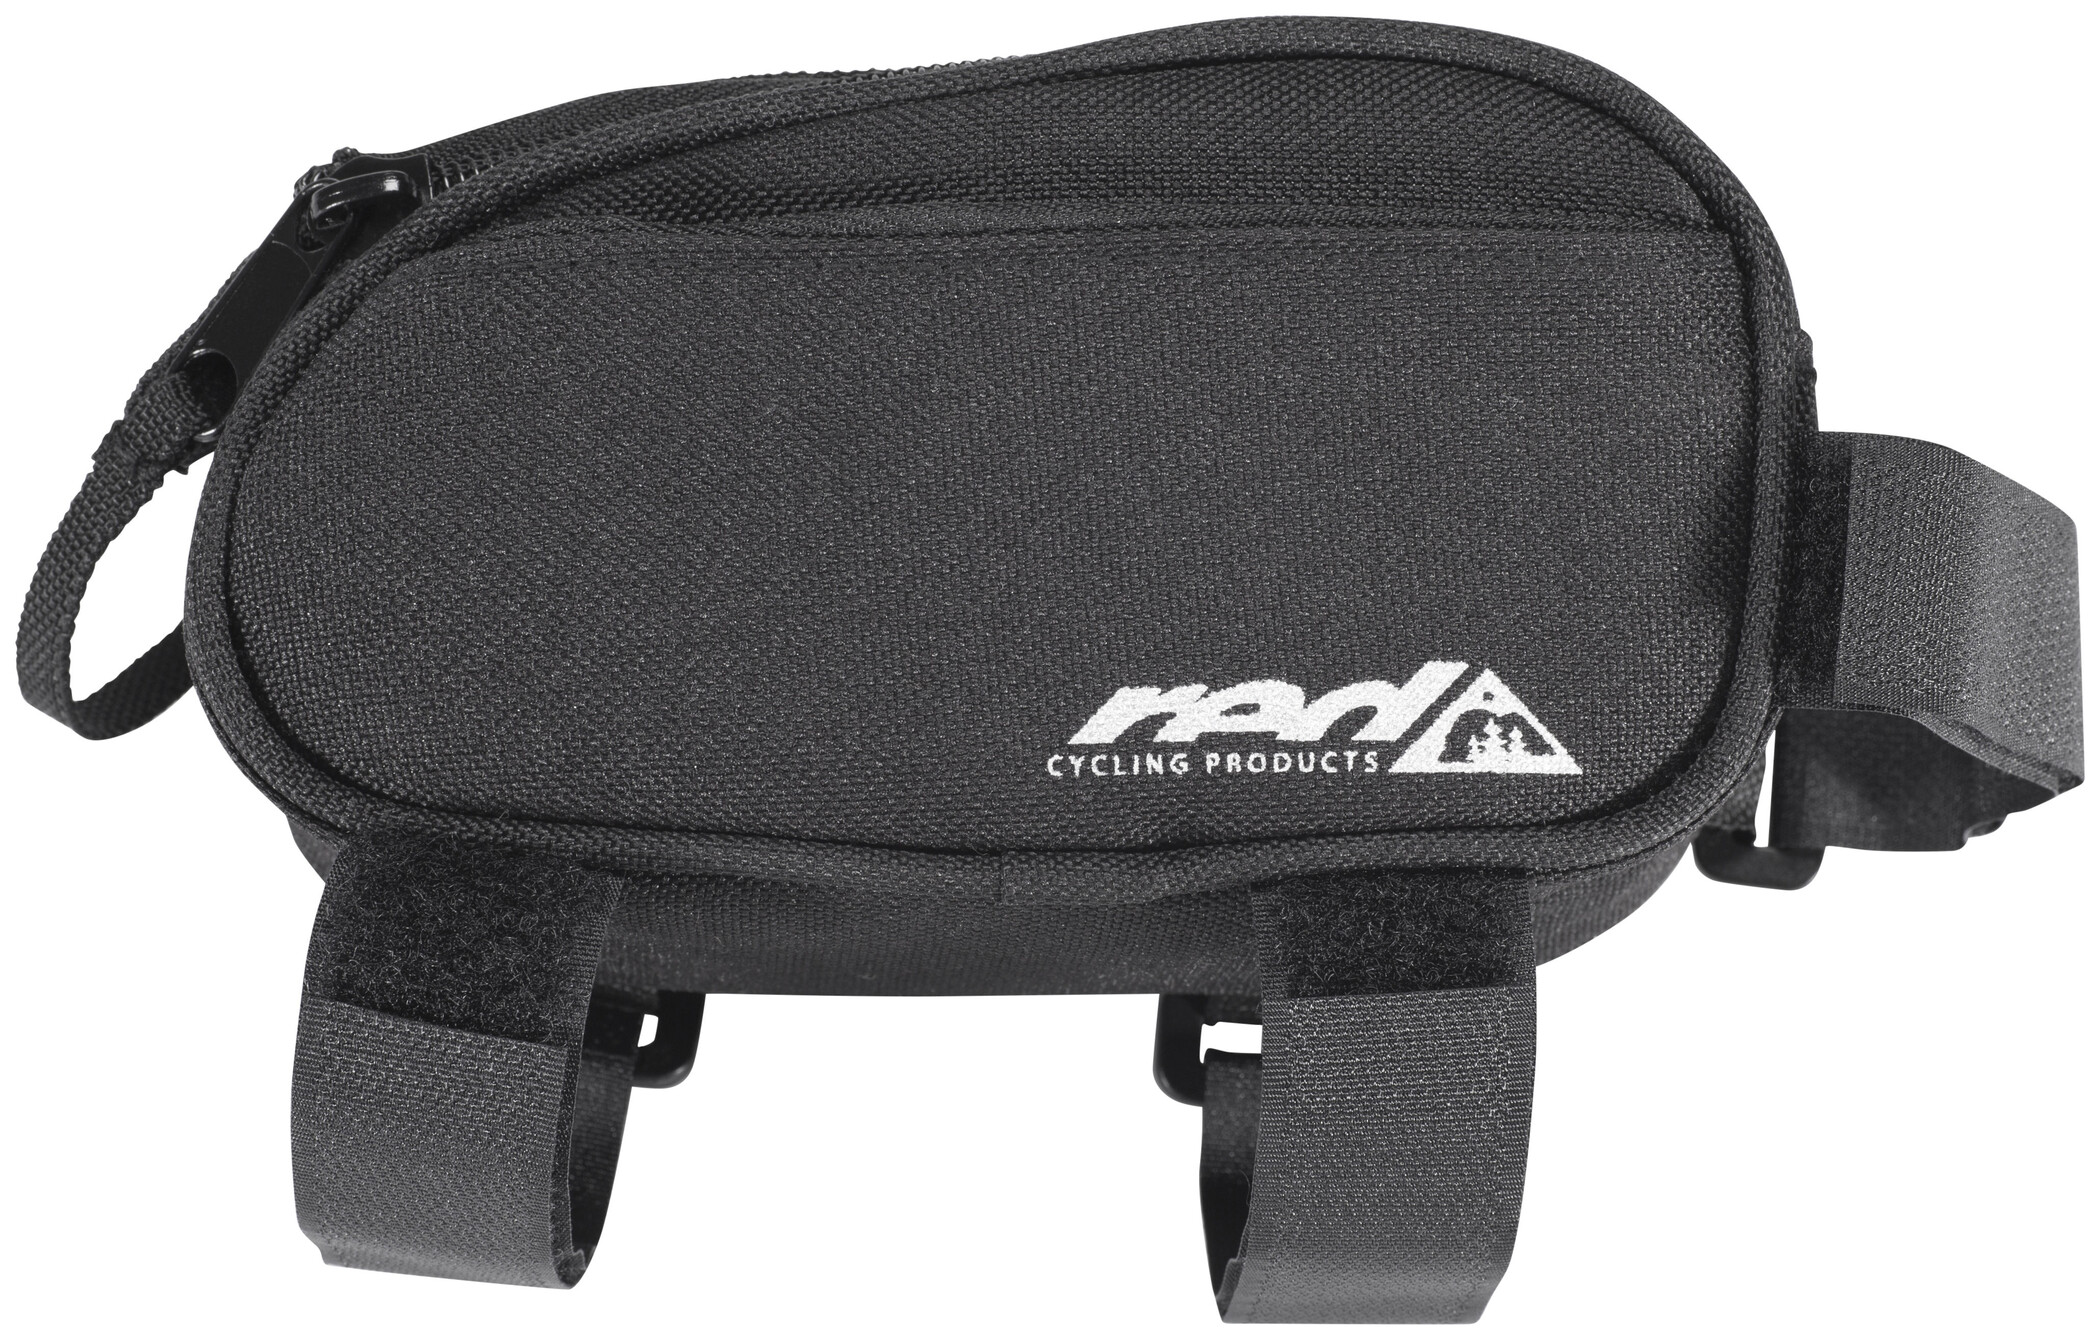 Red Cycling Products Frame Bag Special Cykeltaske, black | Frame bags